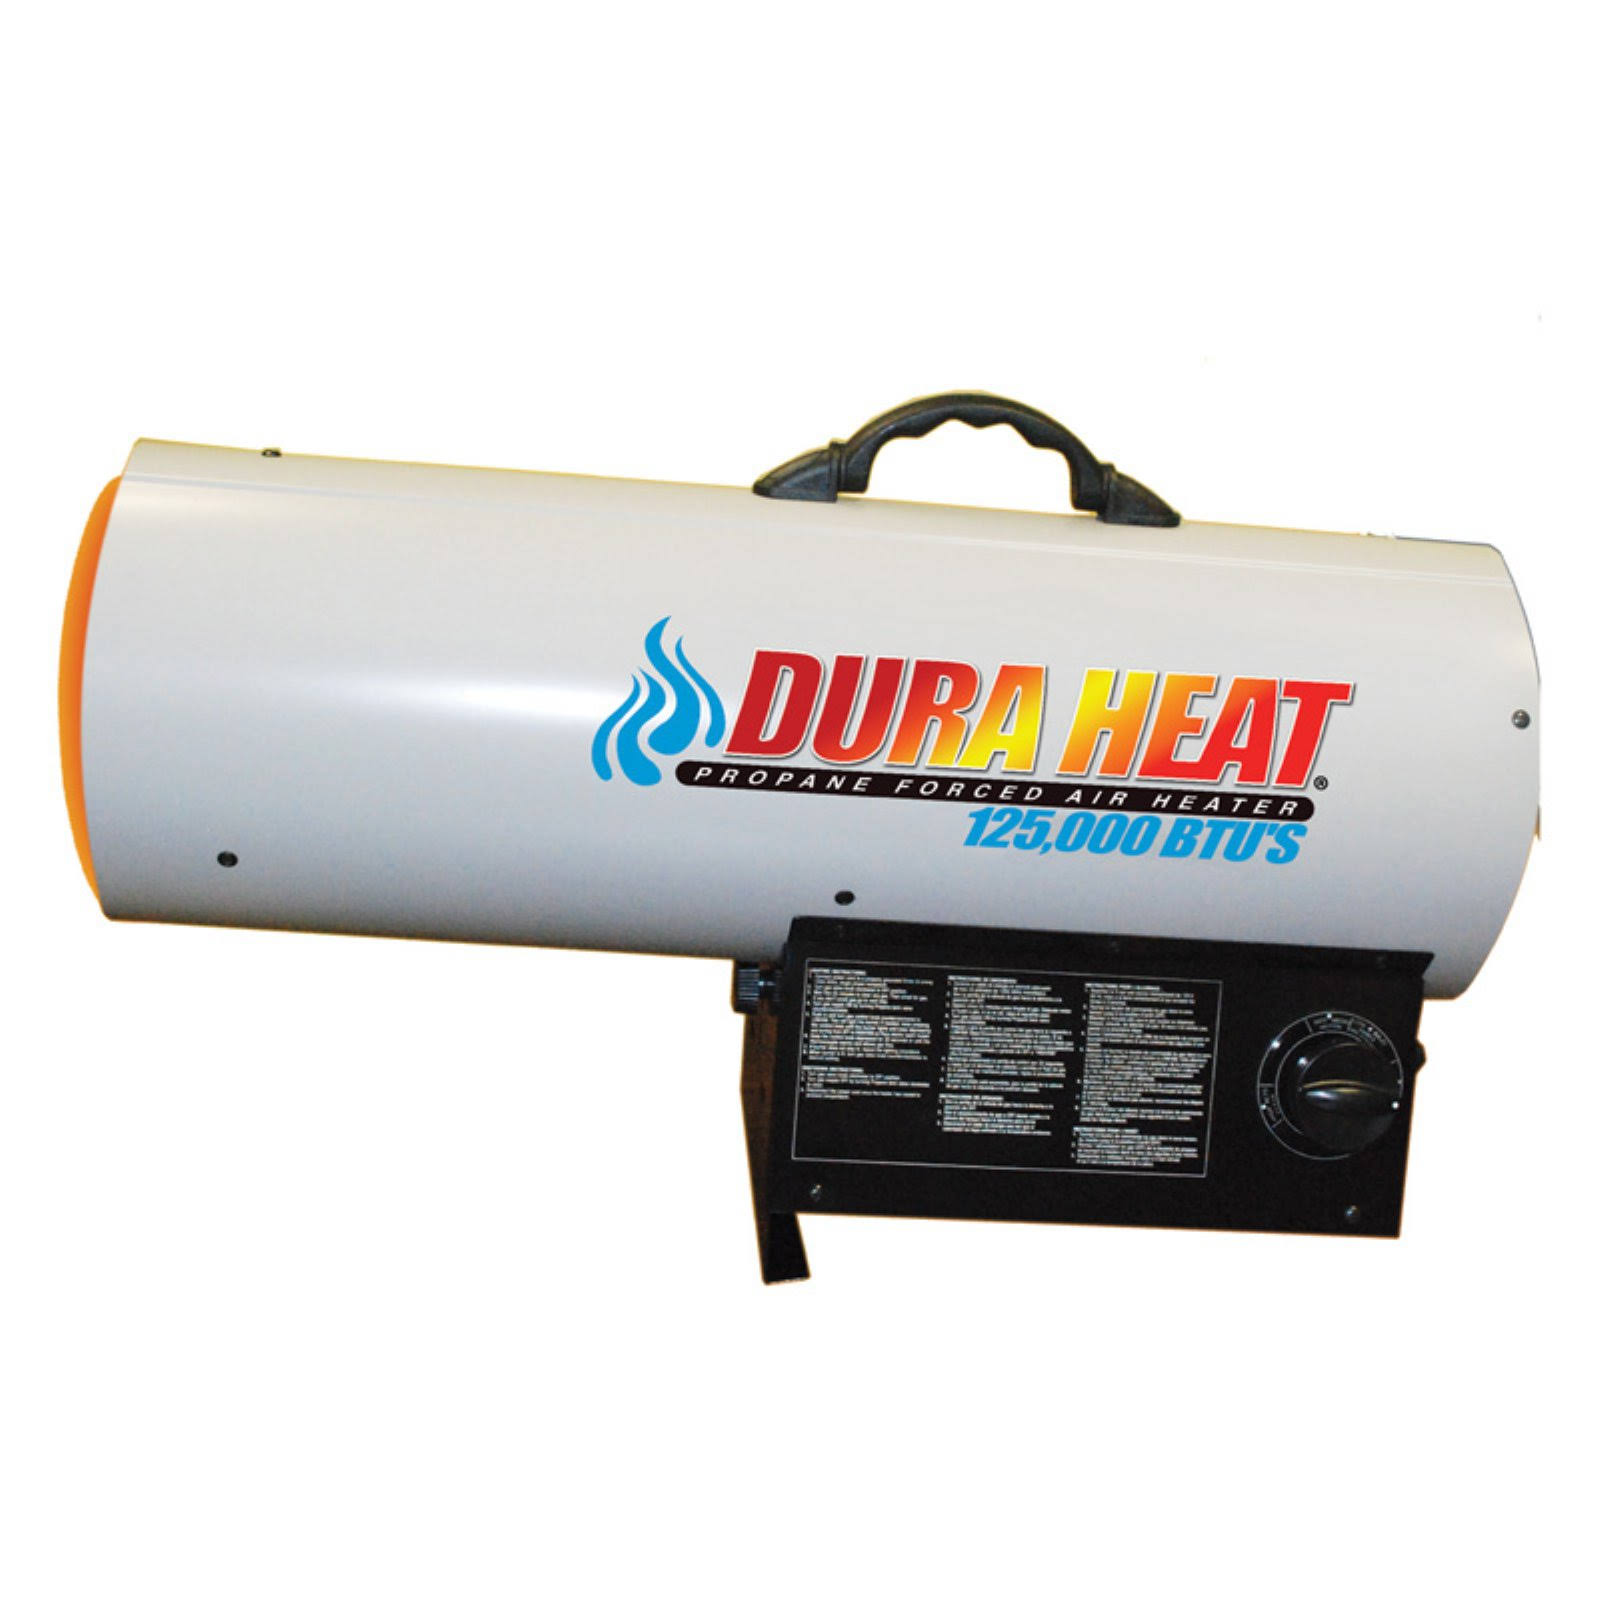 Dura Heat Propane Forced Air Heater - White